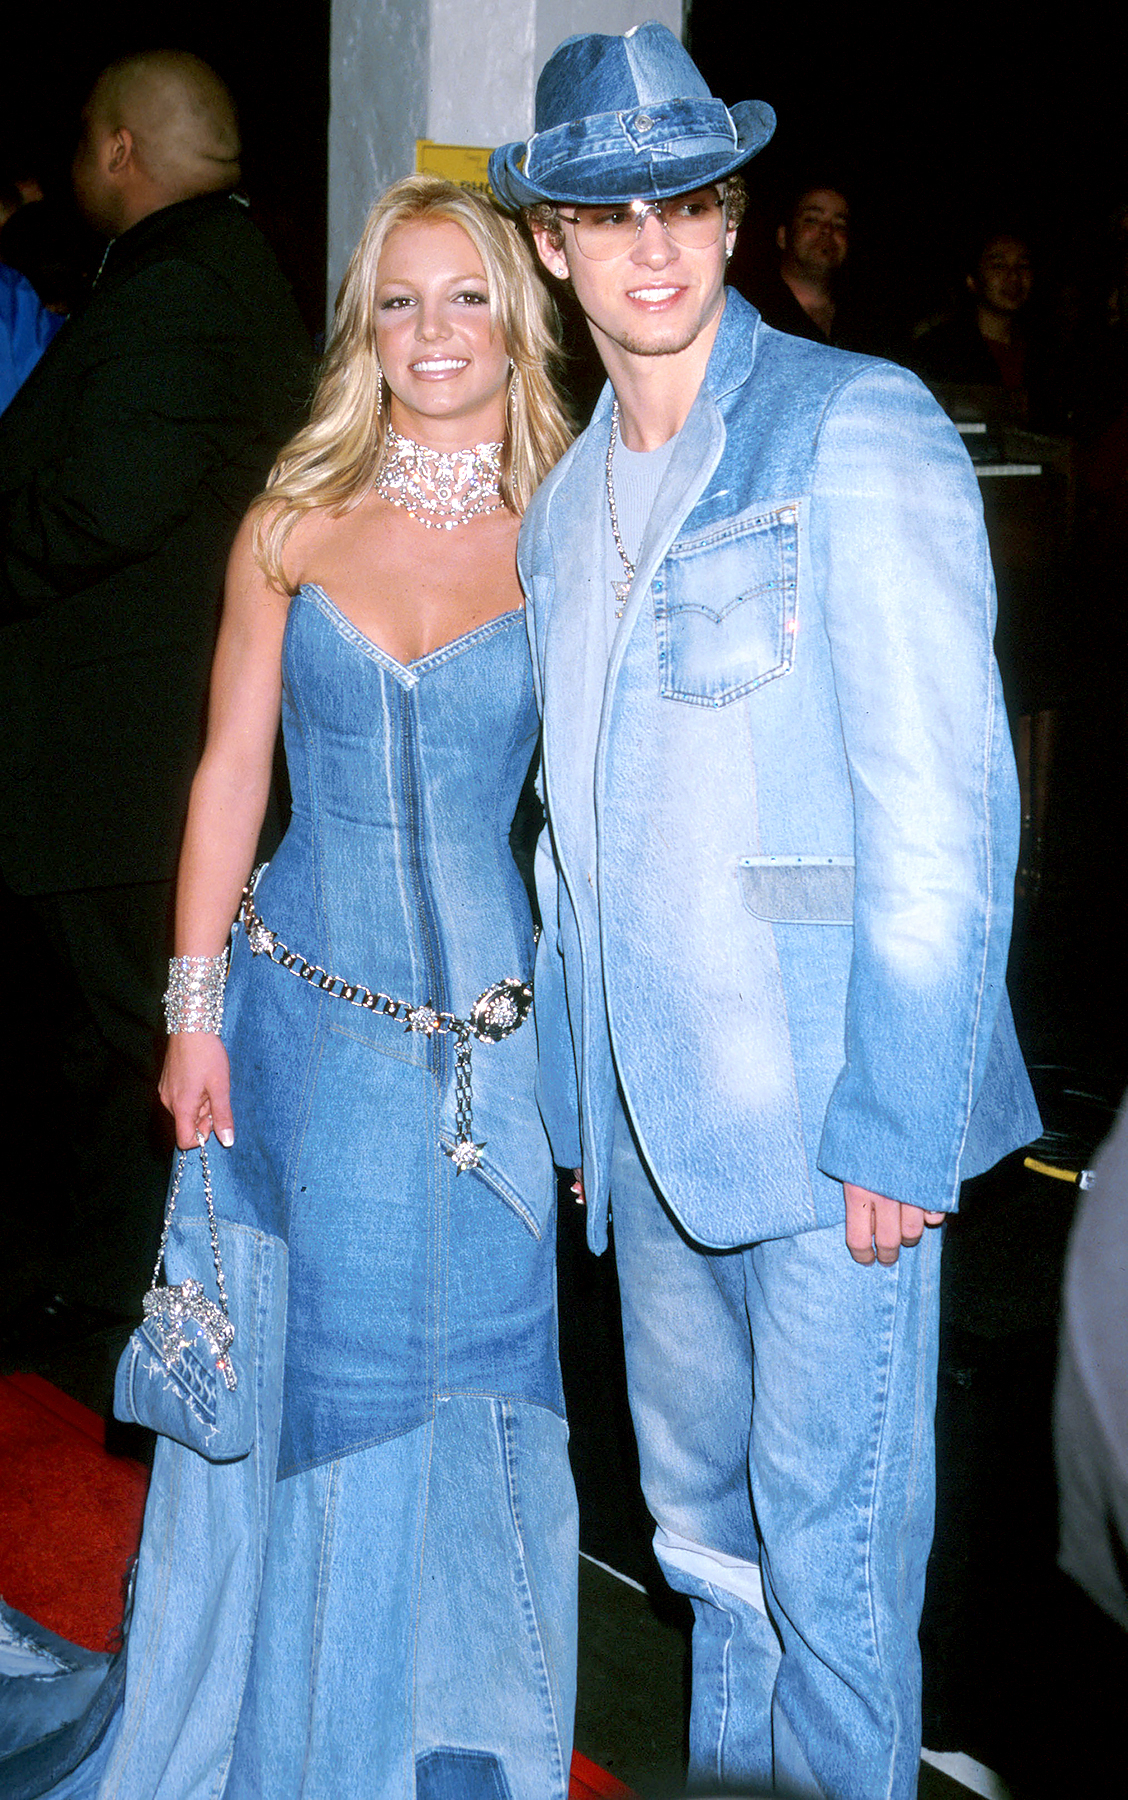 Britney Spears and Justin Timberlake at the Shrine Auditorium in Los Angeles, CA at the 2001 AMAs.